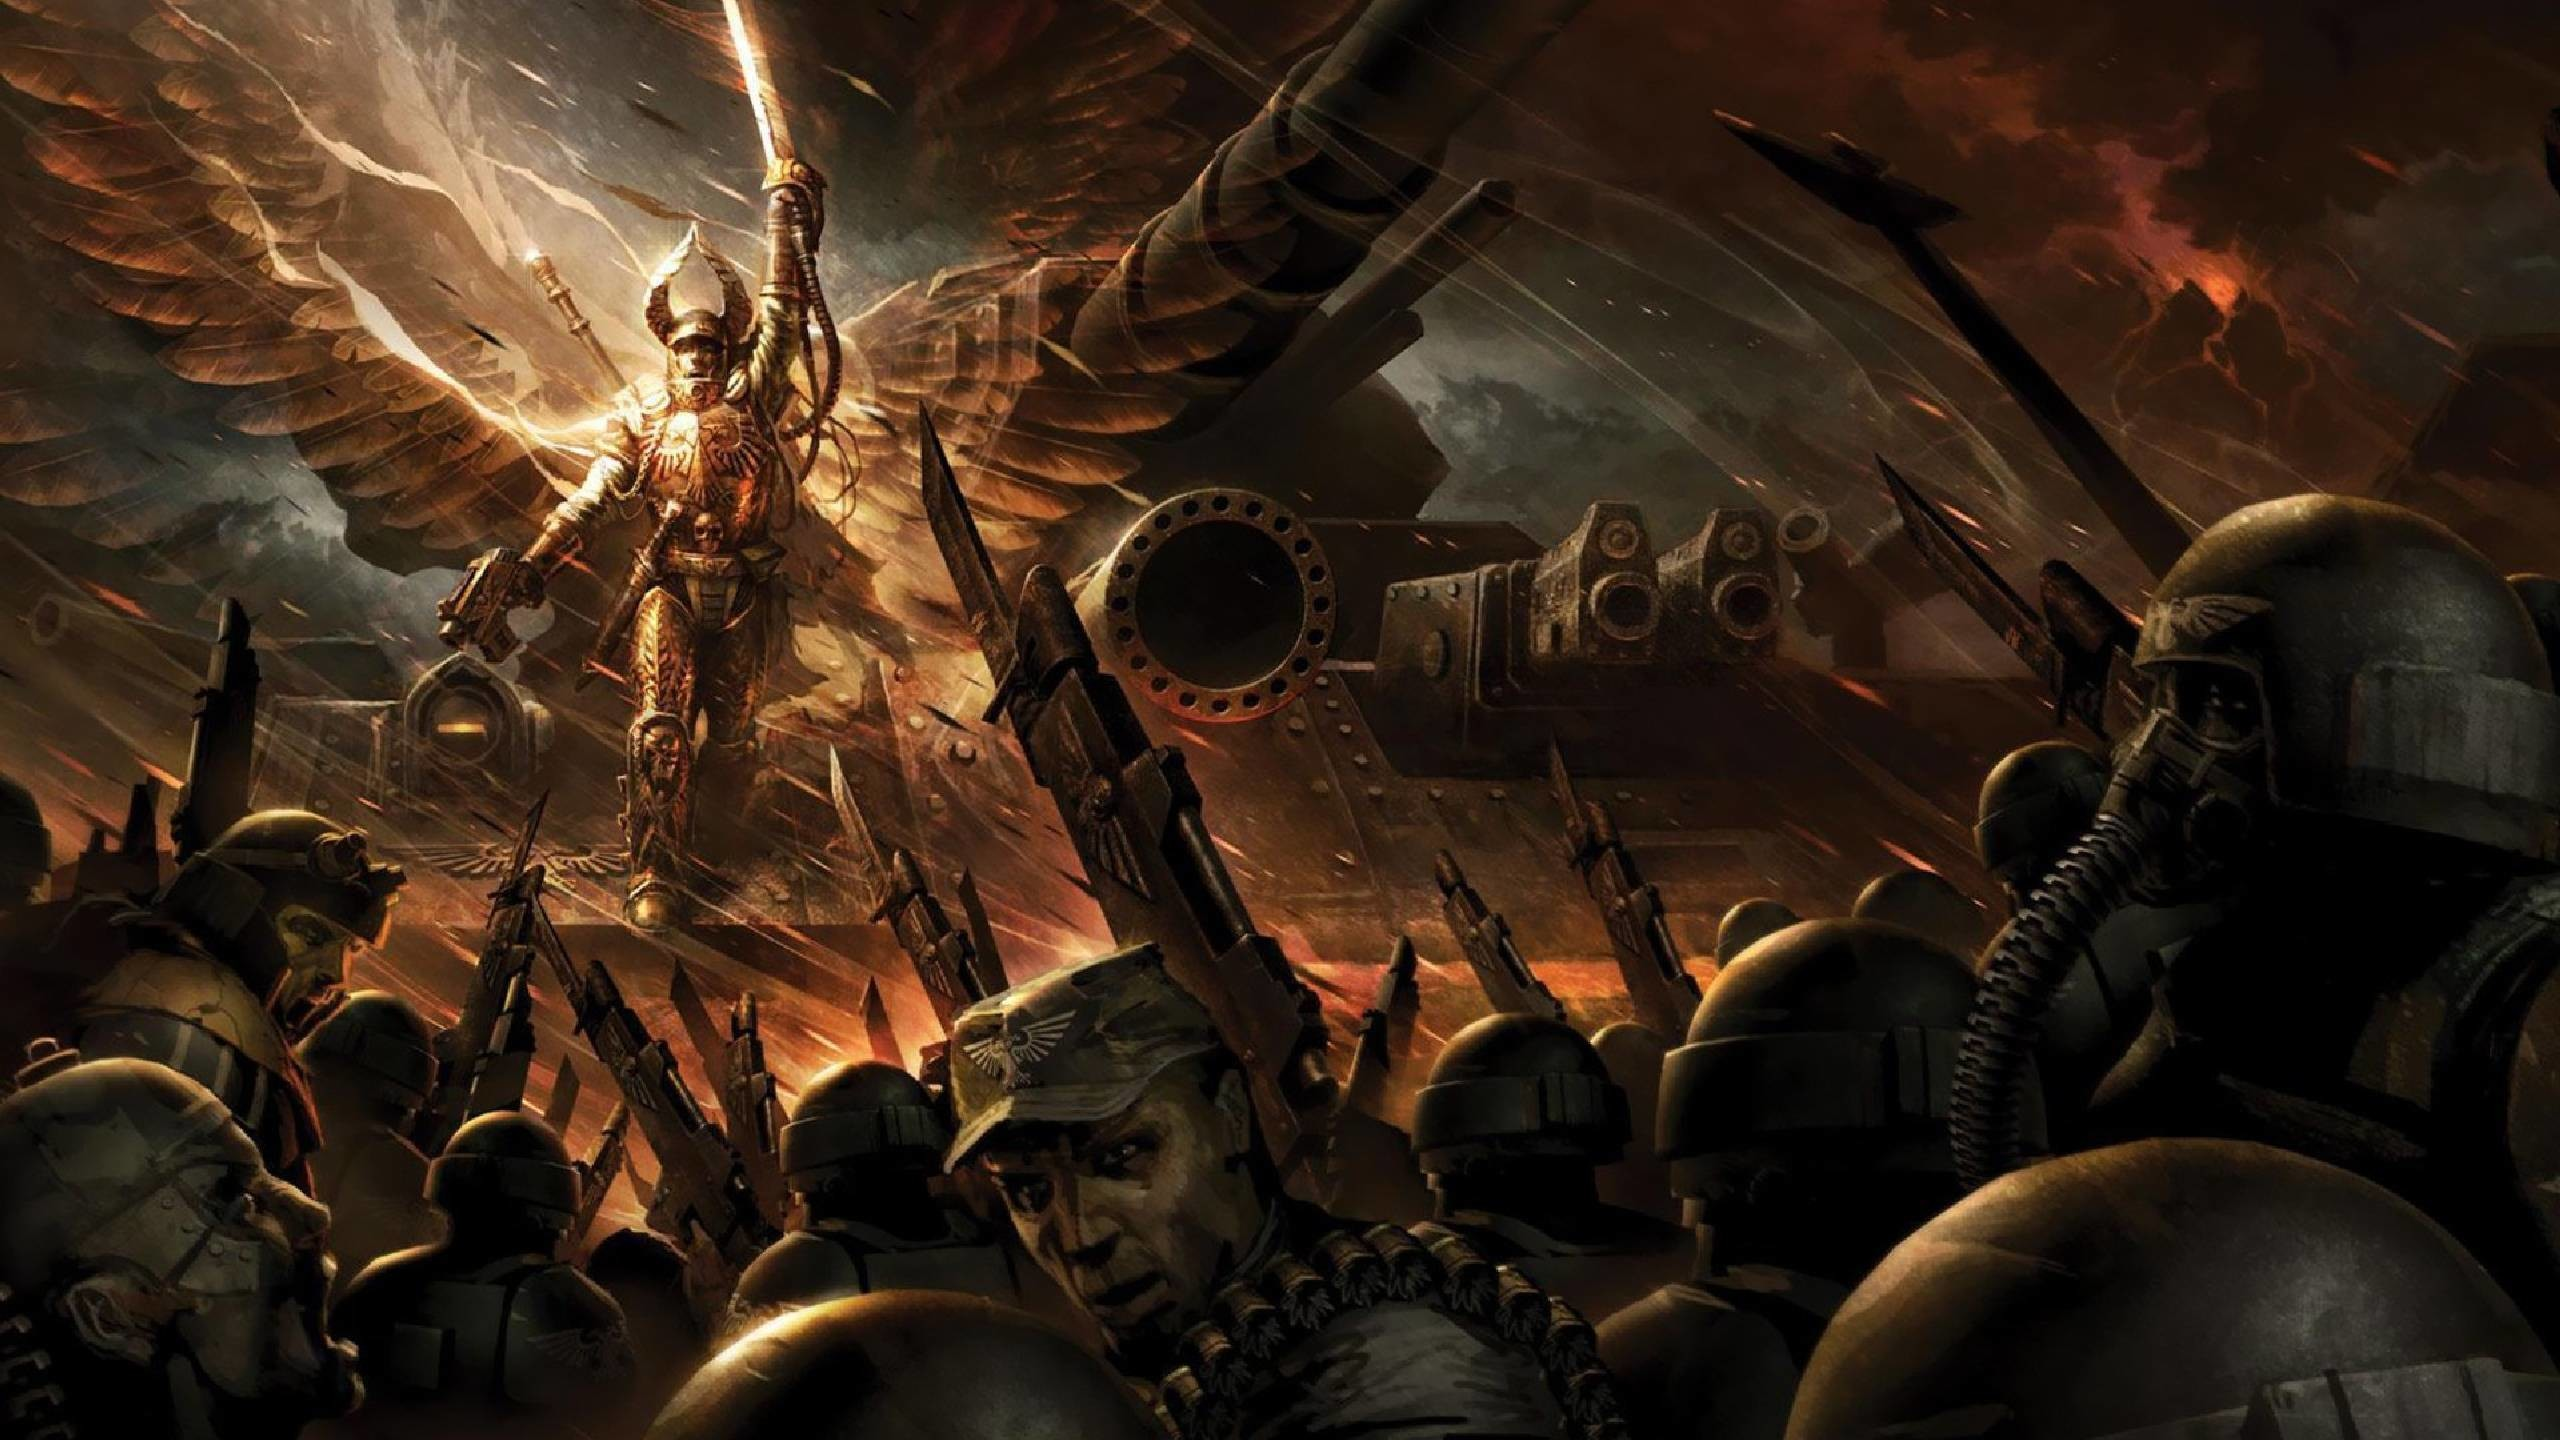 Warhammer 40K HD Wallpapers (64+ images)